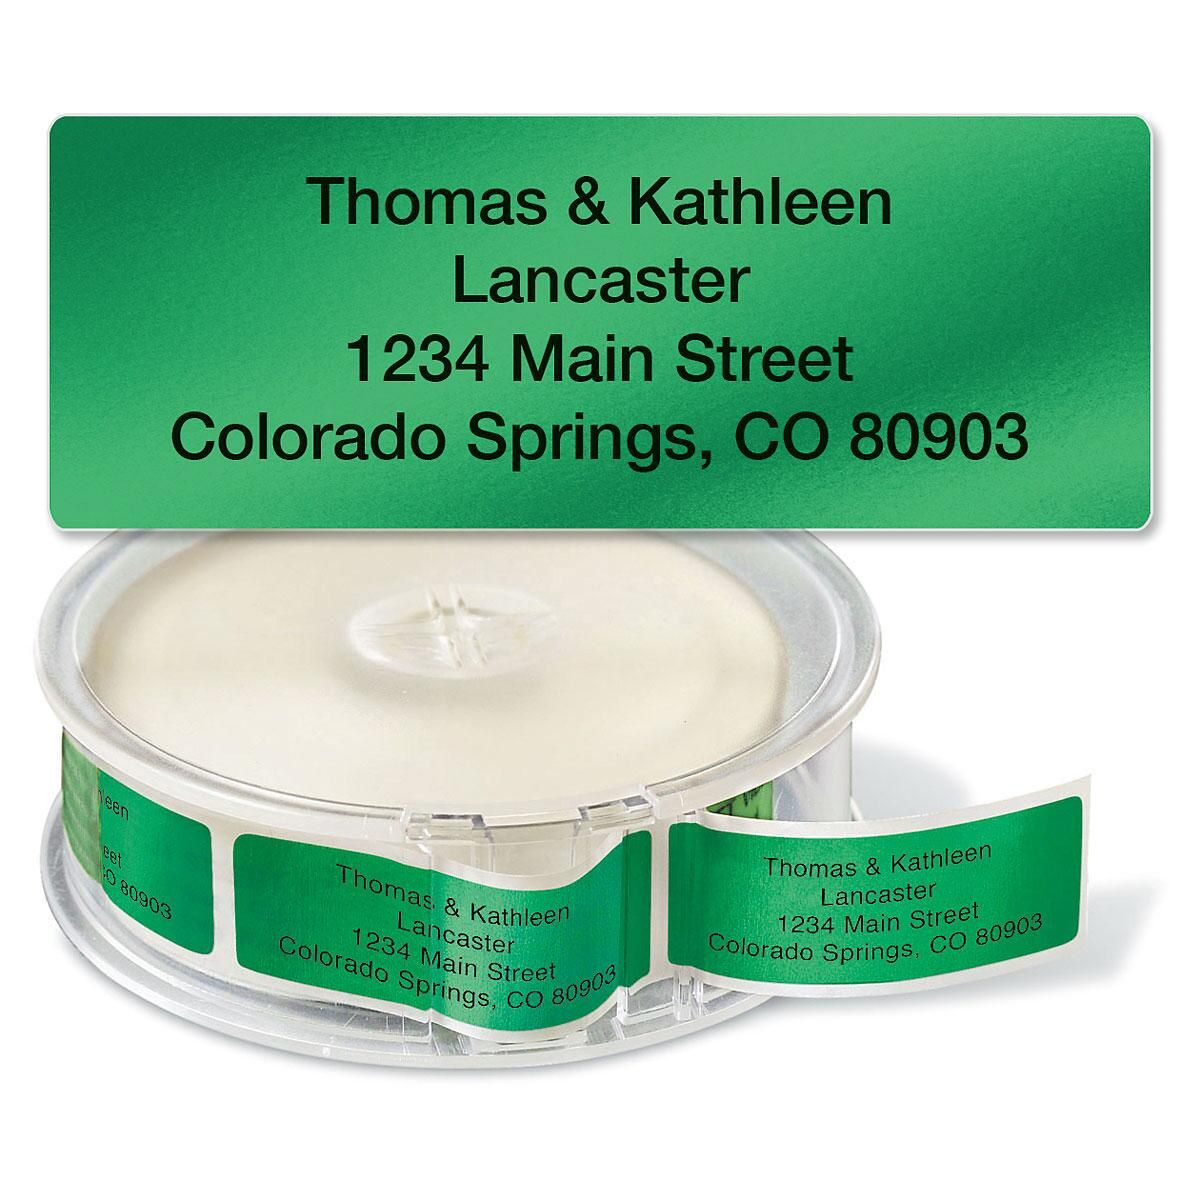 Green Foil Rolled Address Label